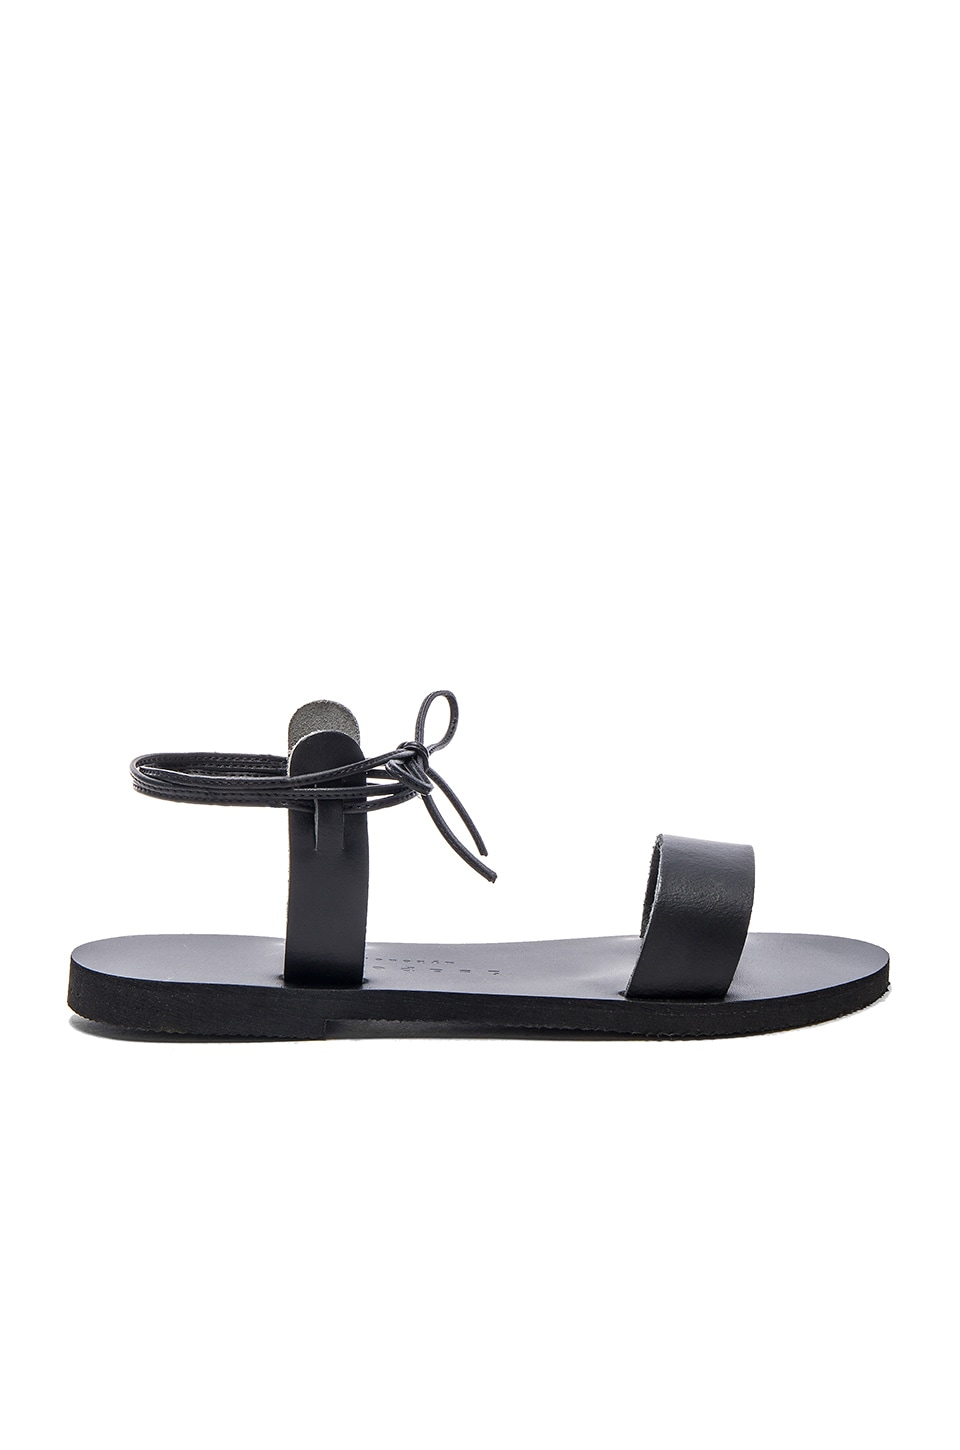 isapera Thyme Sandal in Black